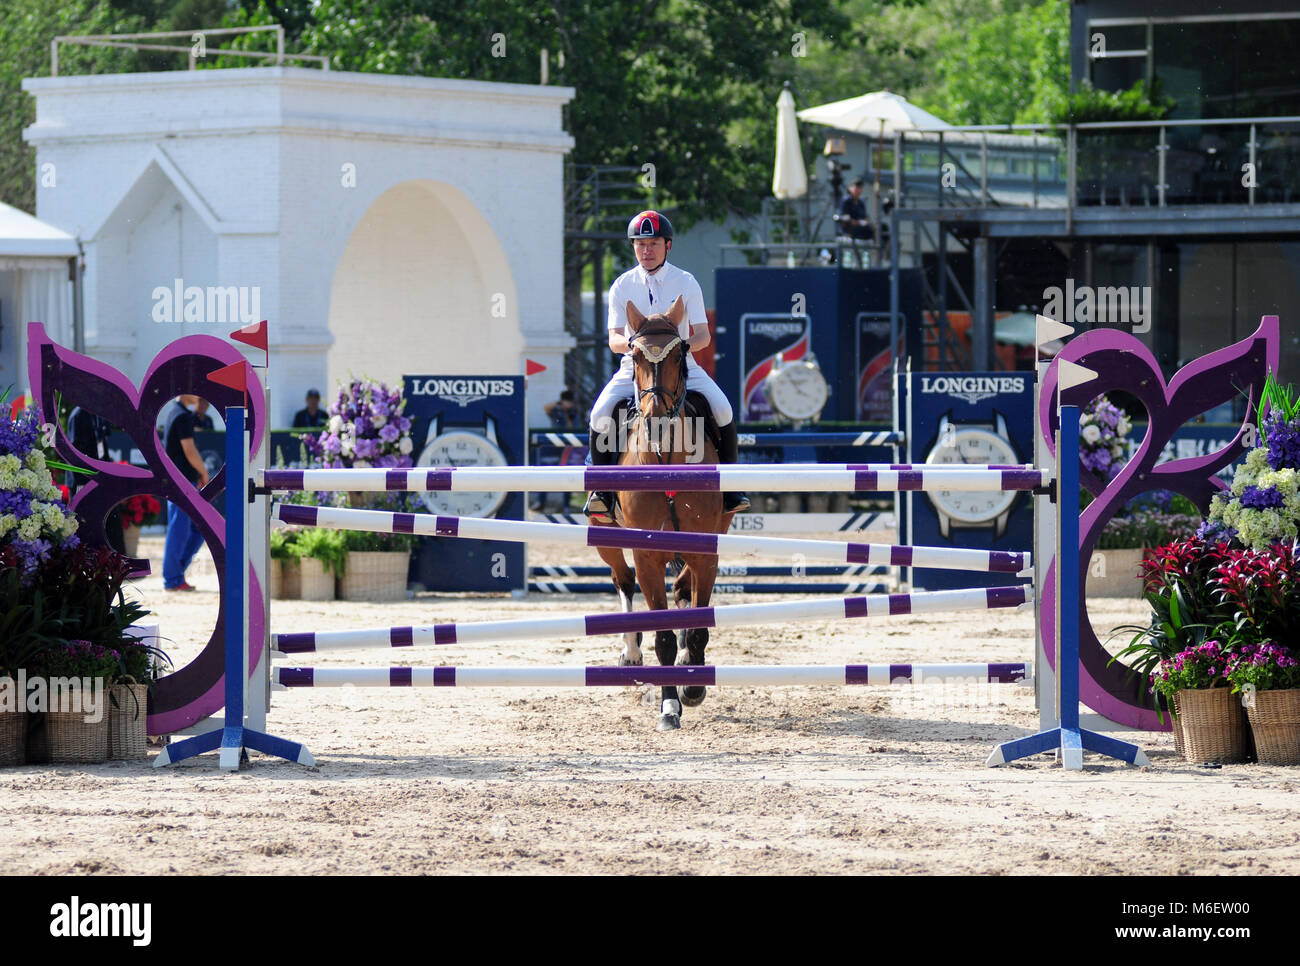 A competitor prepares to jump at the FEI jumping event in Chaoyang park, Beijing, China, in October 2017 Stock Photo